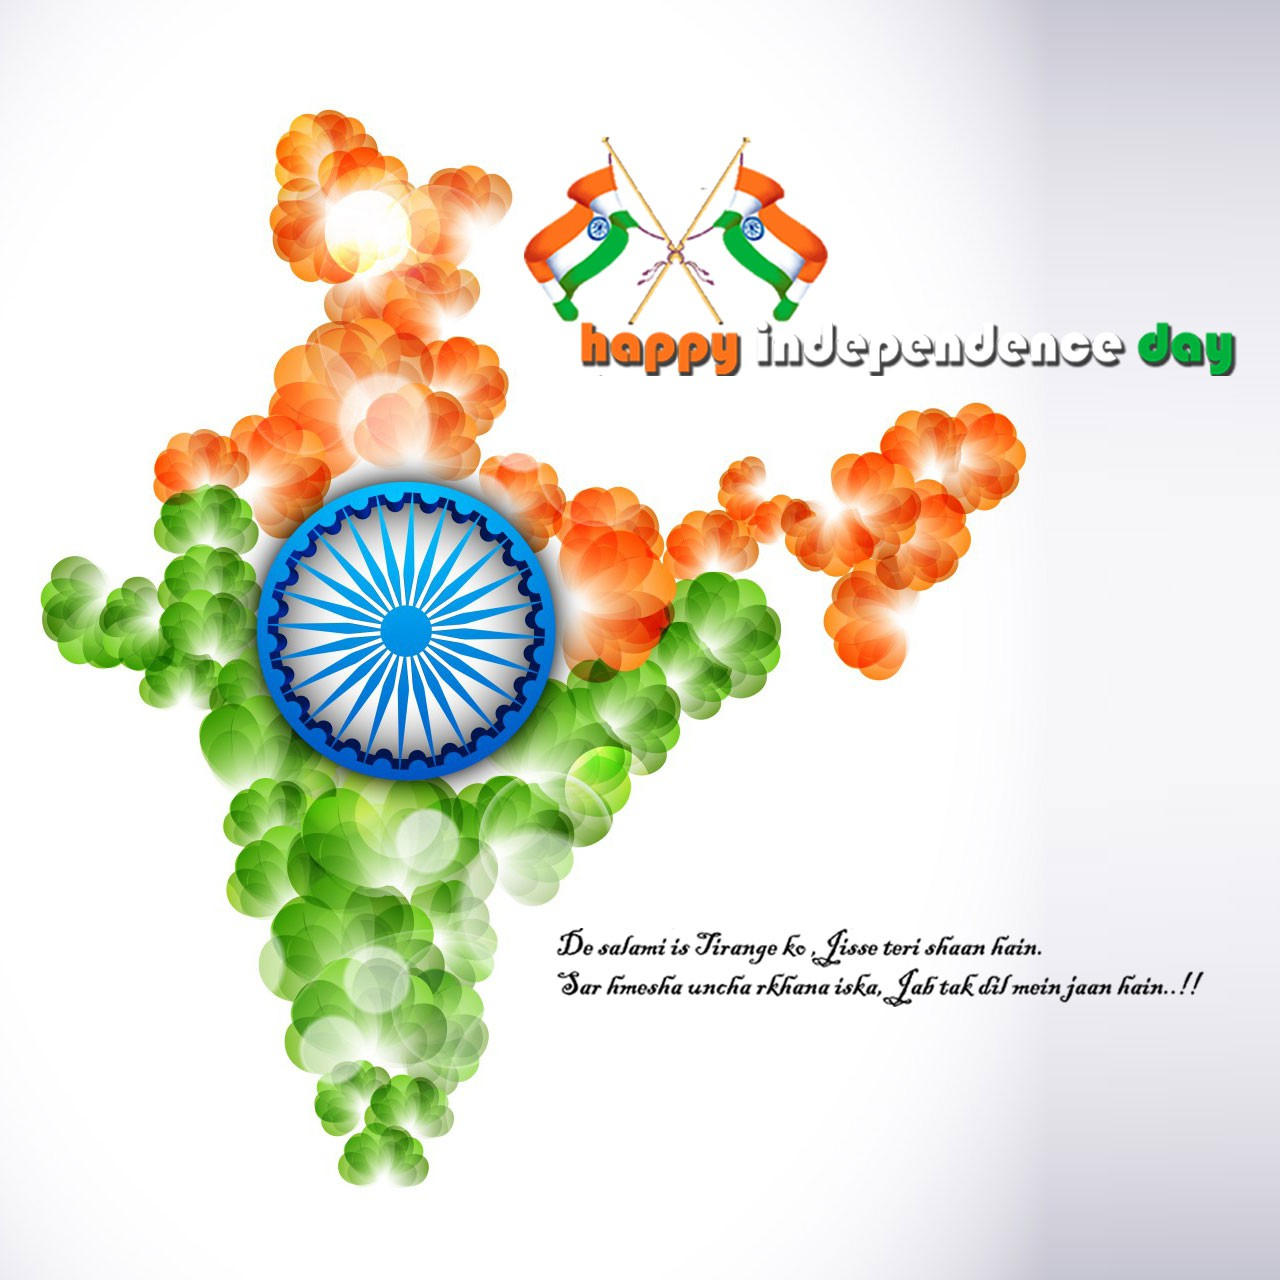 Best India Independence Day Wallpapers August 15 Desktop Fb Iphone 1280x1280